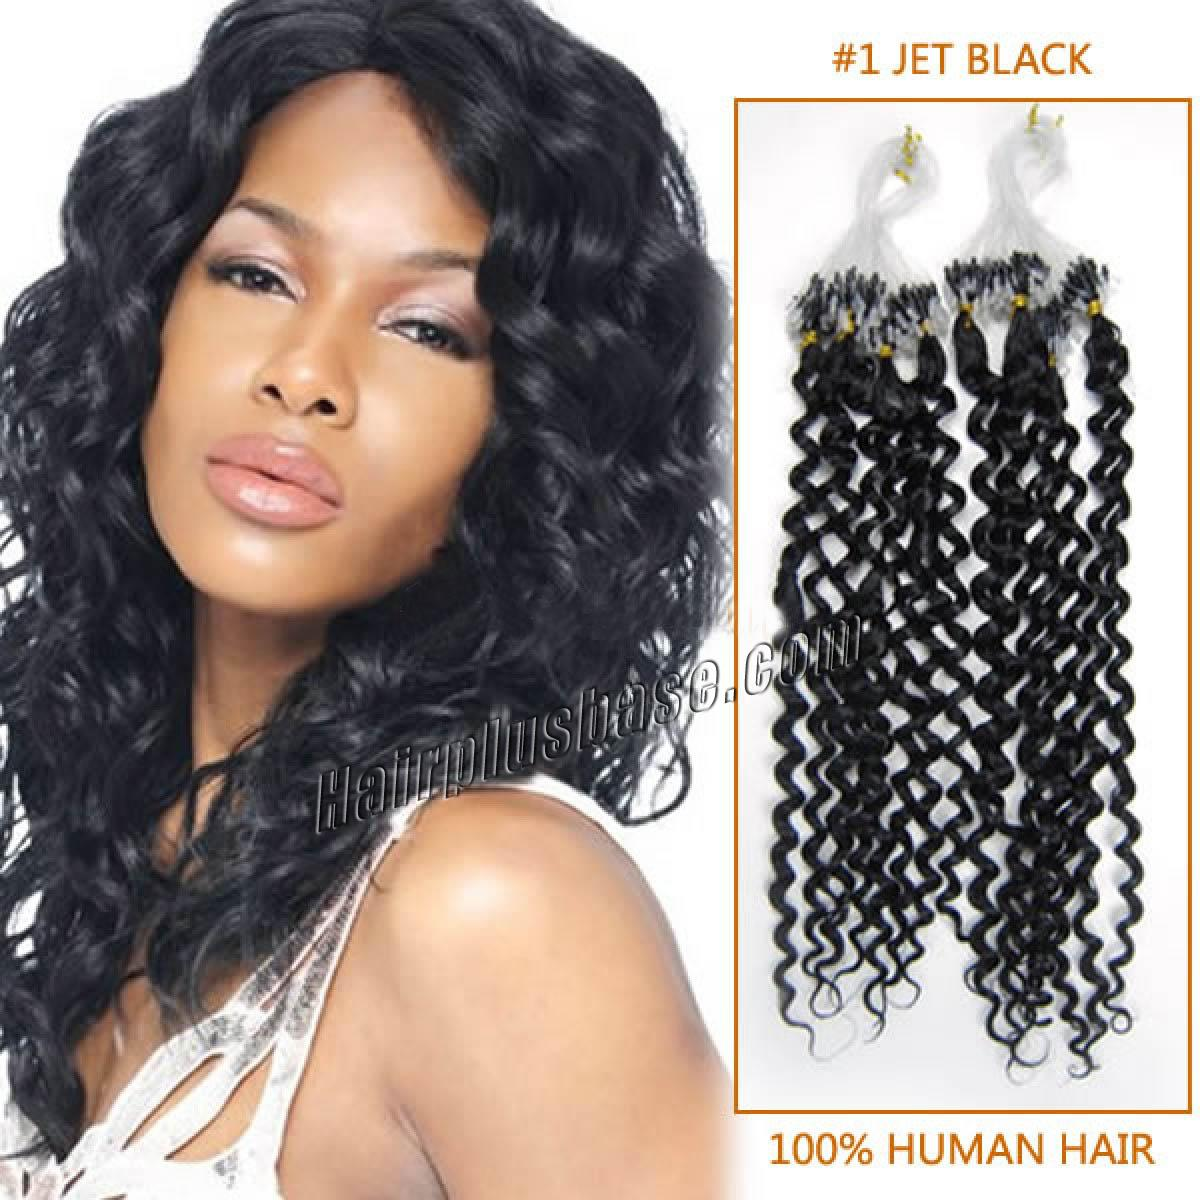 Inch 1 jet black curly micro loop human hair extensions 100s 20 inch 1 jet black curly micro loop human hair extensions 100s pmusecretfo Images